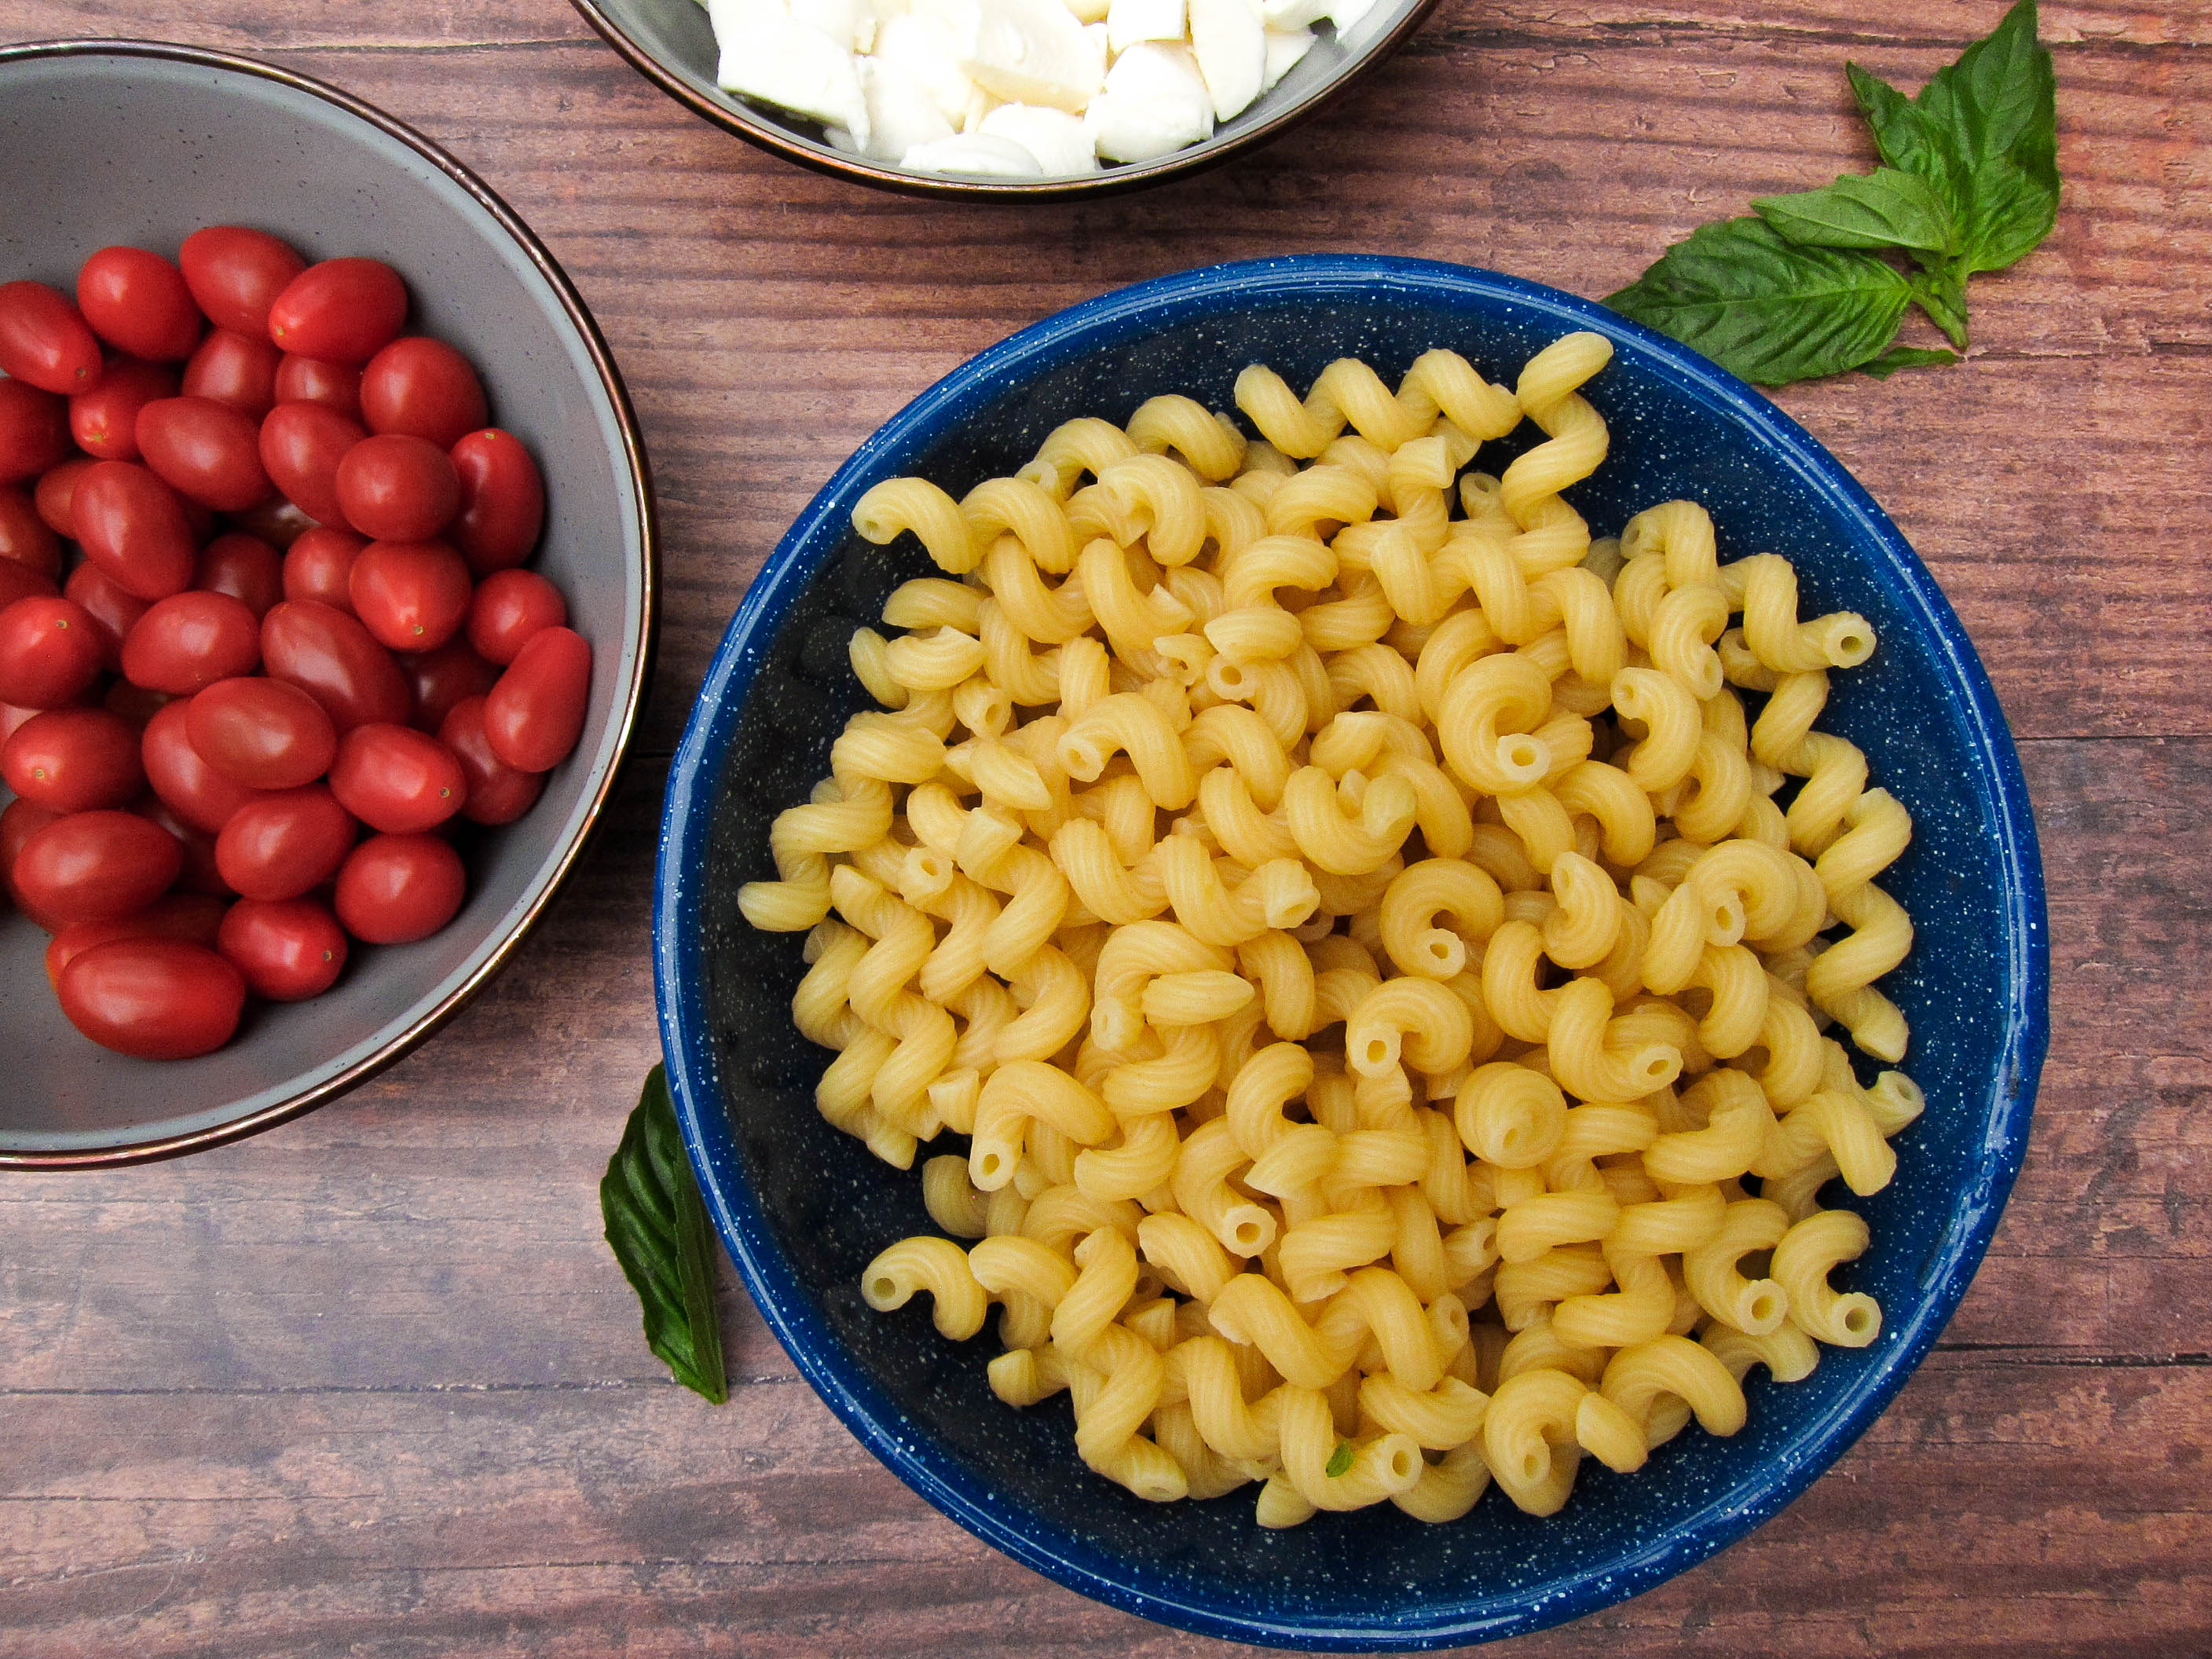 Blue bowl of pasta salad near bowl of tomatoes.